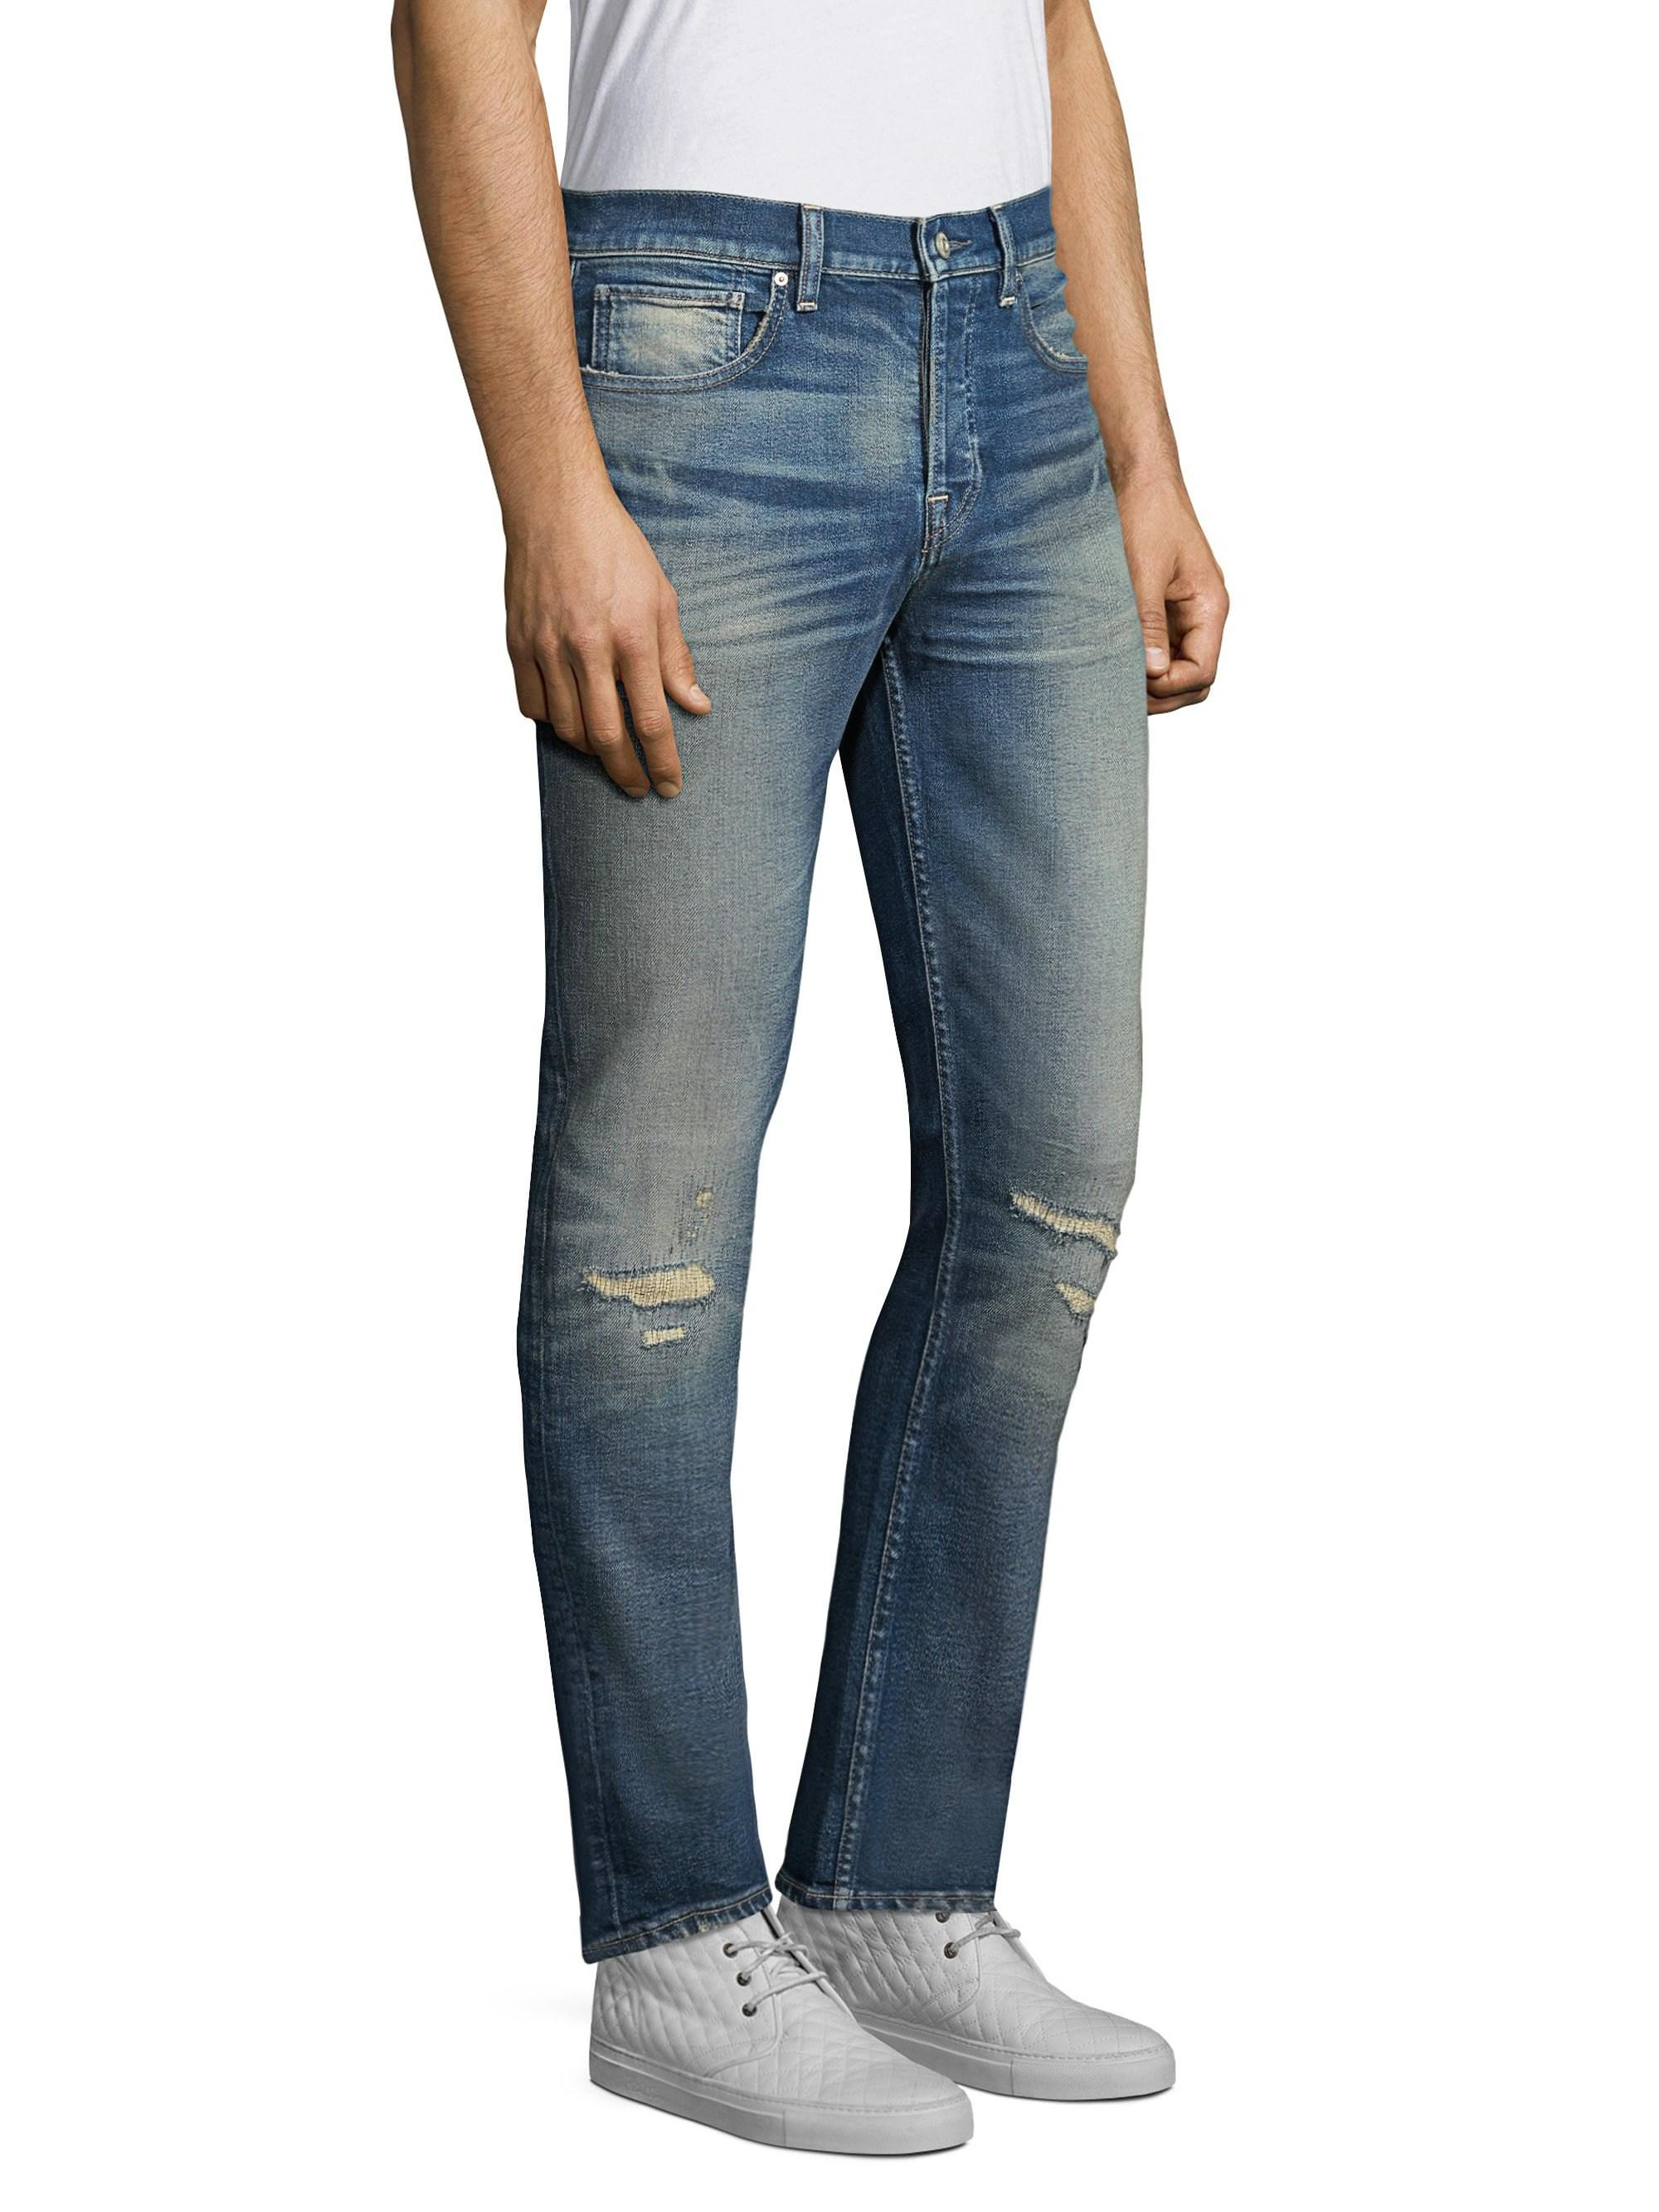 f4d77c8a410 Lyst - Hudson Jeans Men's Axl Skinny Mended Jeans - Mended in Blue ...